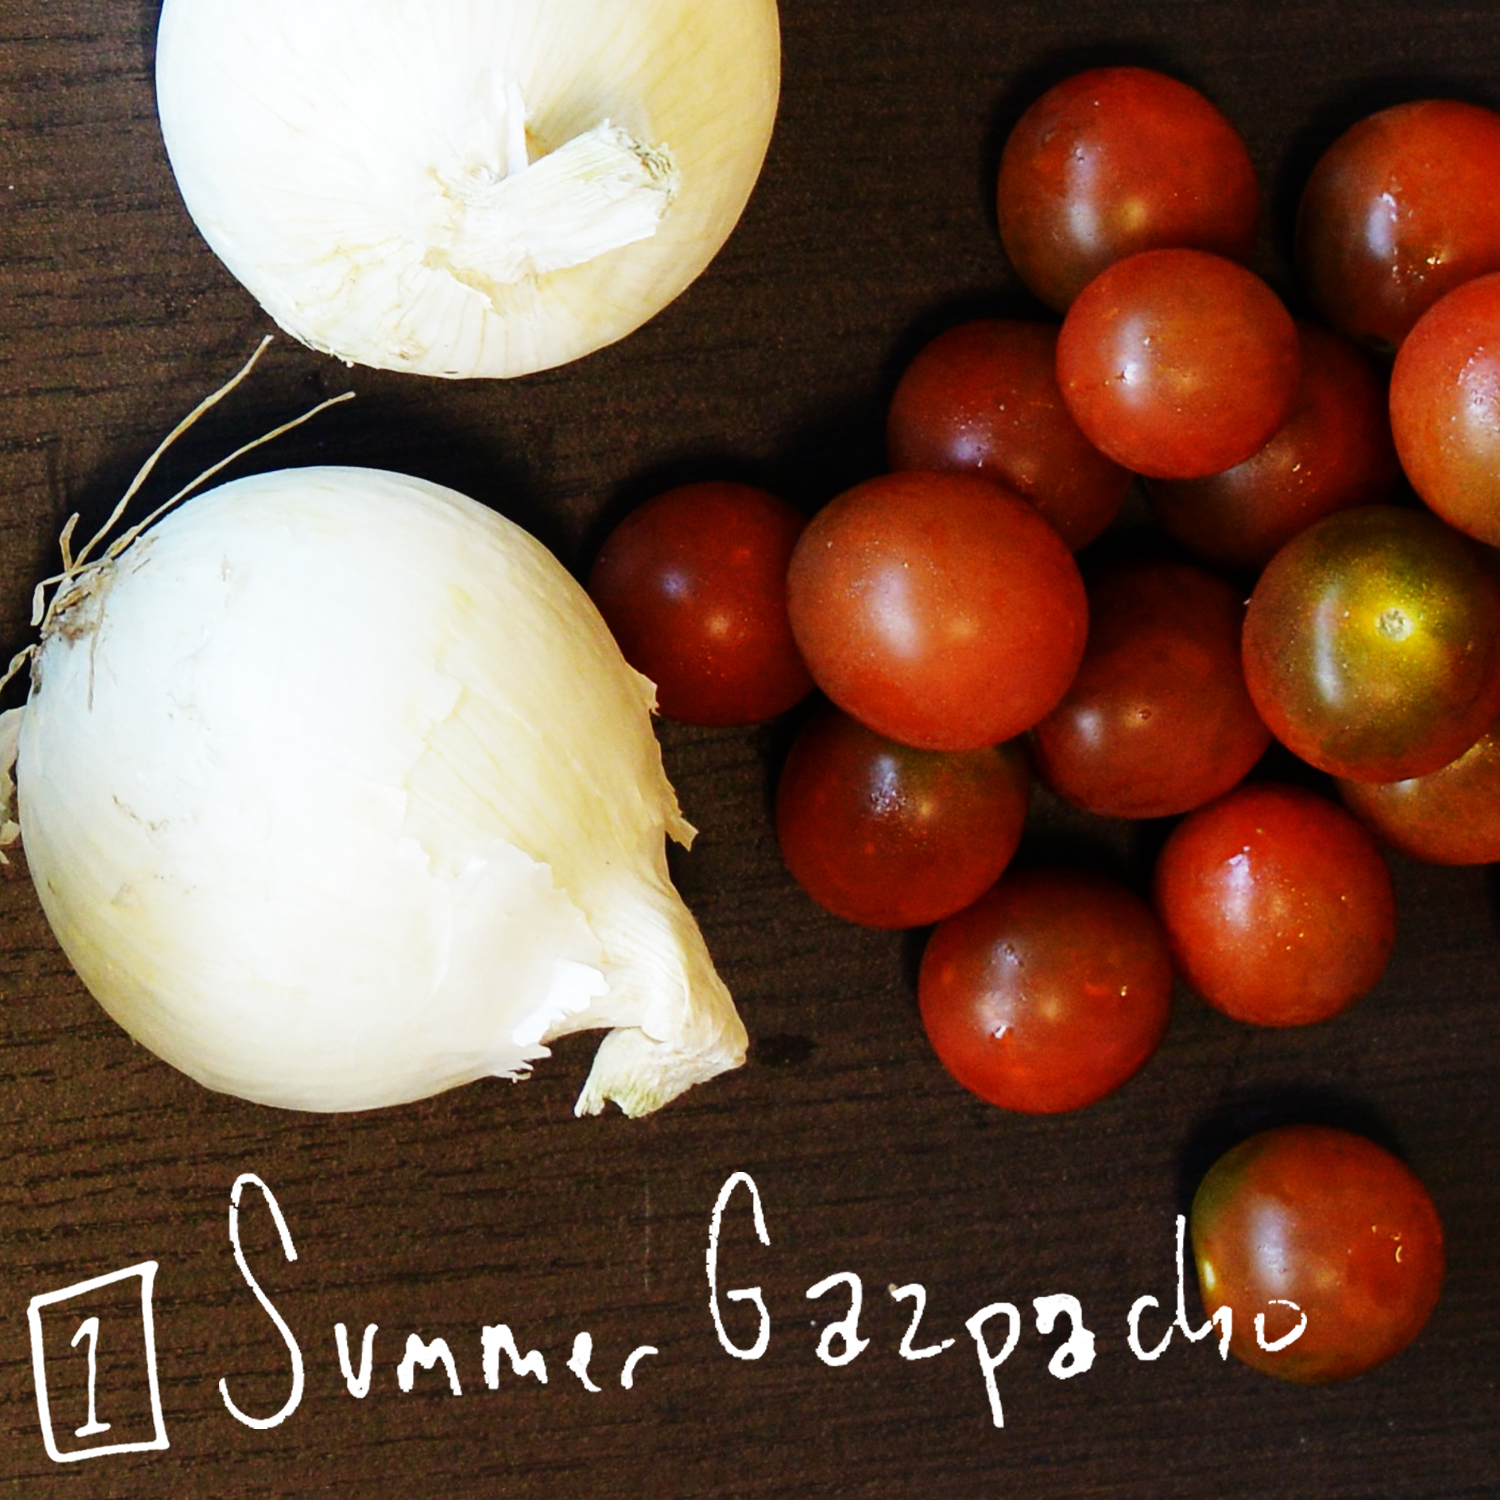 A refreshing summer soup for the dog days of Summer. - Find the recipe at: Food52